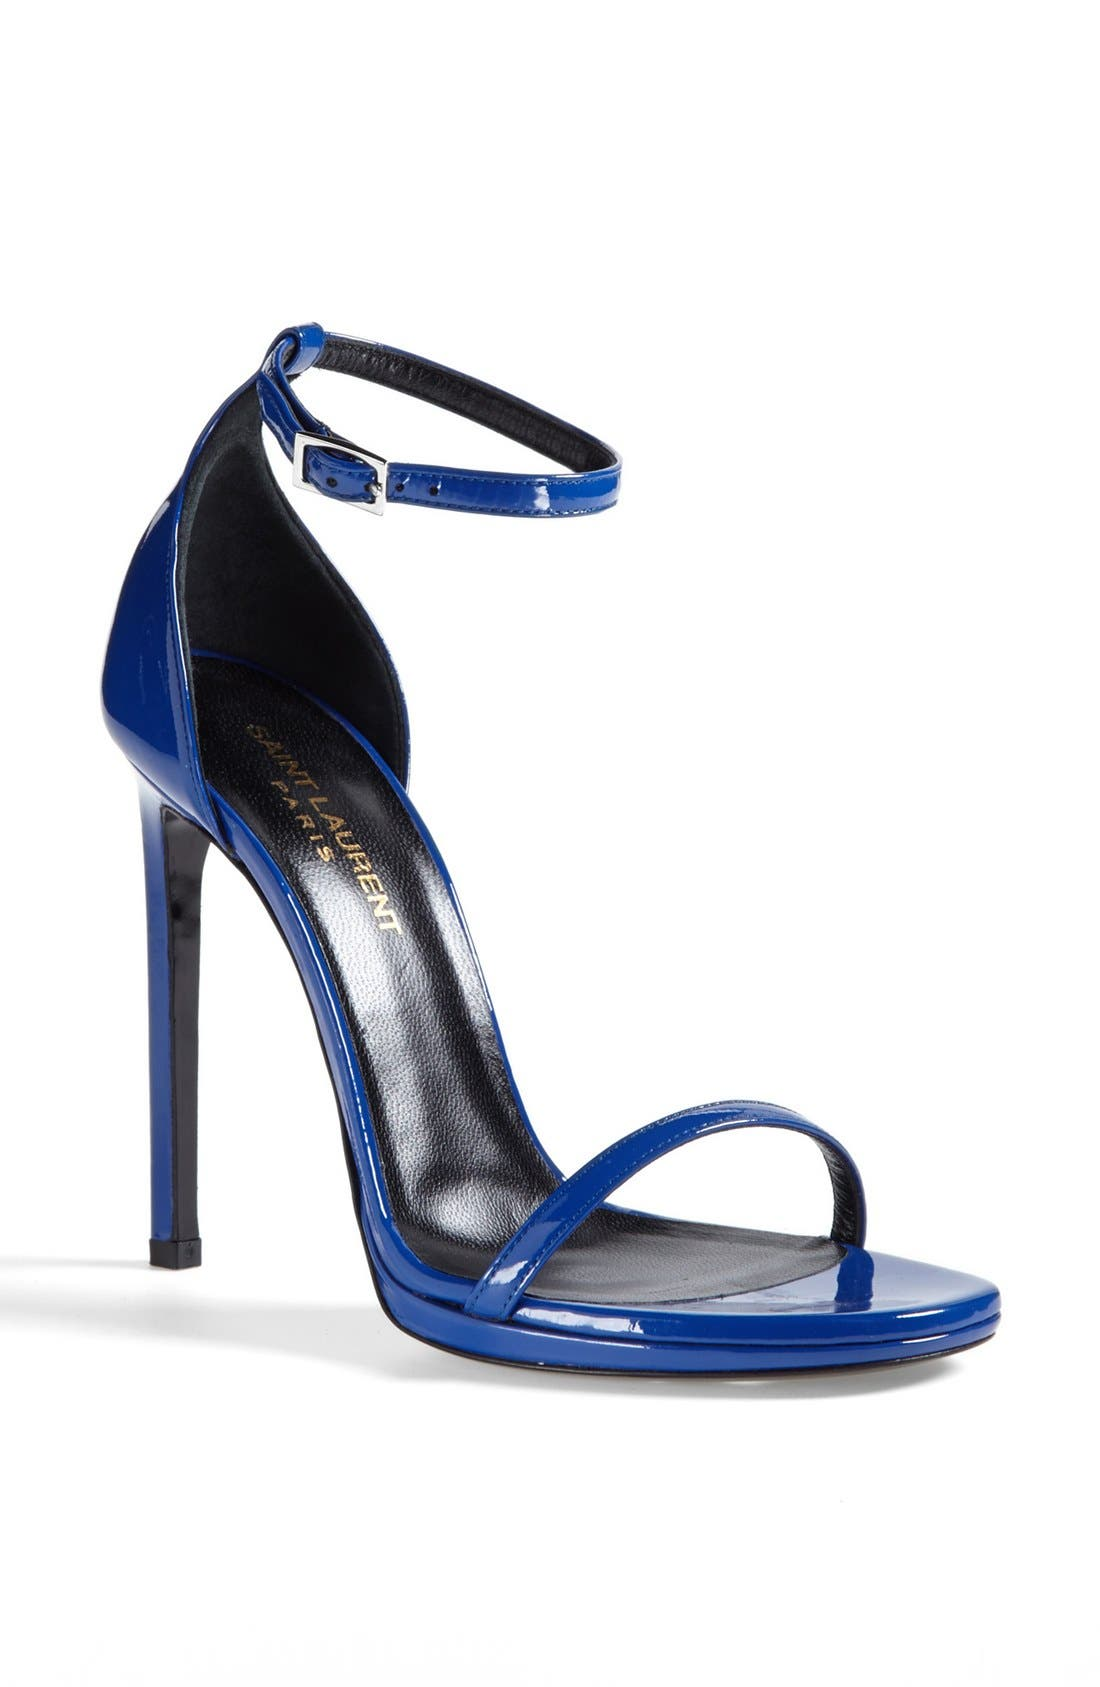 Main Image - Saint Laurent 'Jane' Ankle Strap Leather Sandal